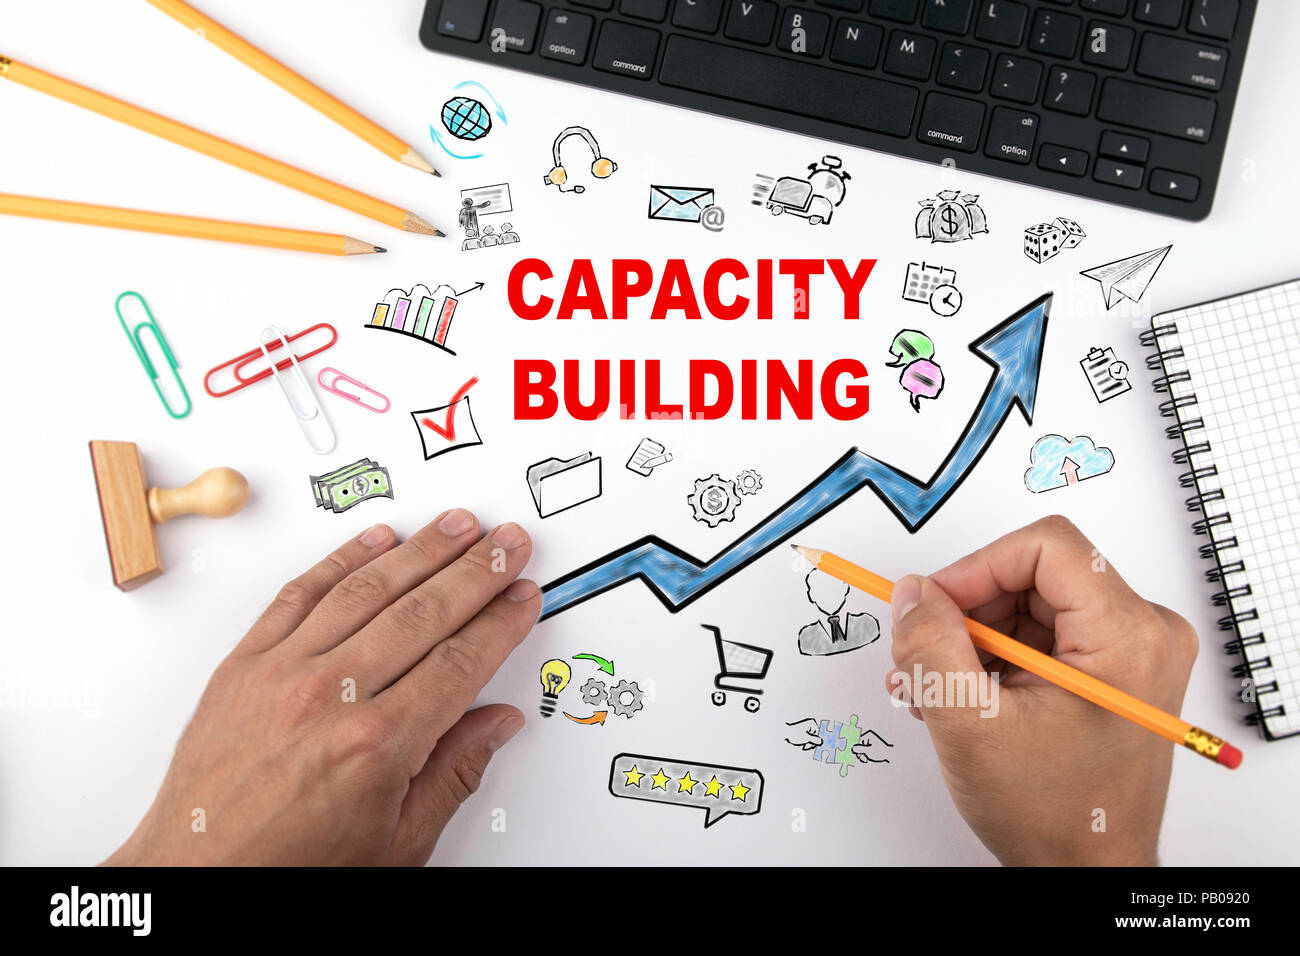 Capacity Building concept. Blue Arrow and Icons Around. Hands on working desk doing business Stock Photo